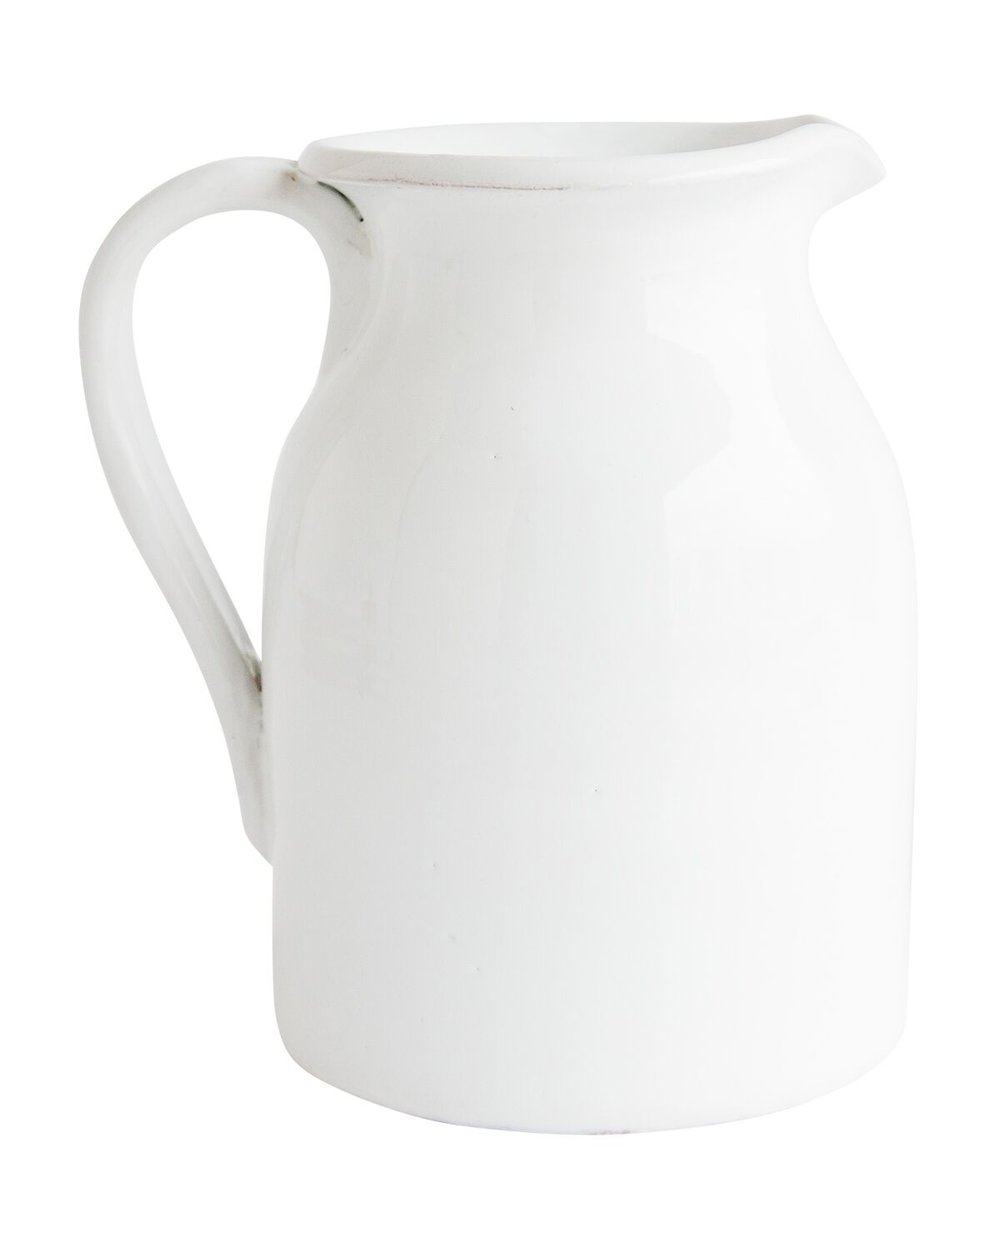 Terra-cotta Pitcher 1_preview.jpg